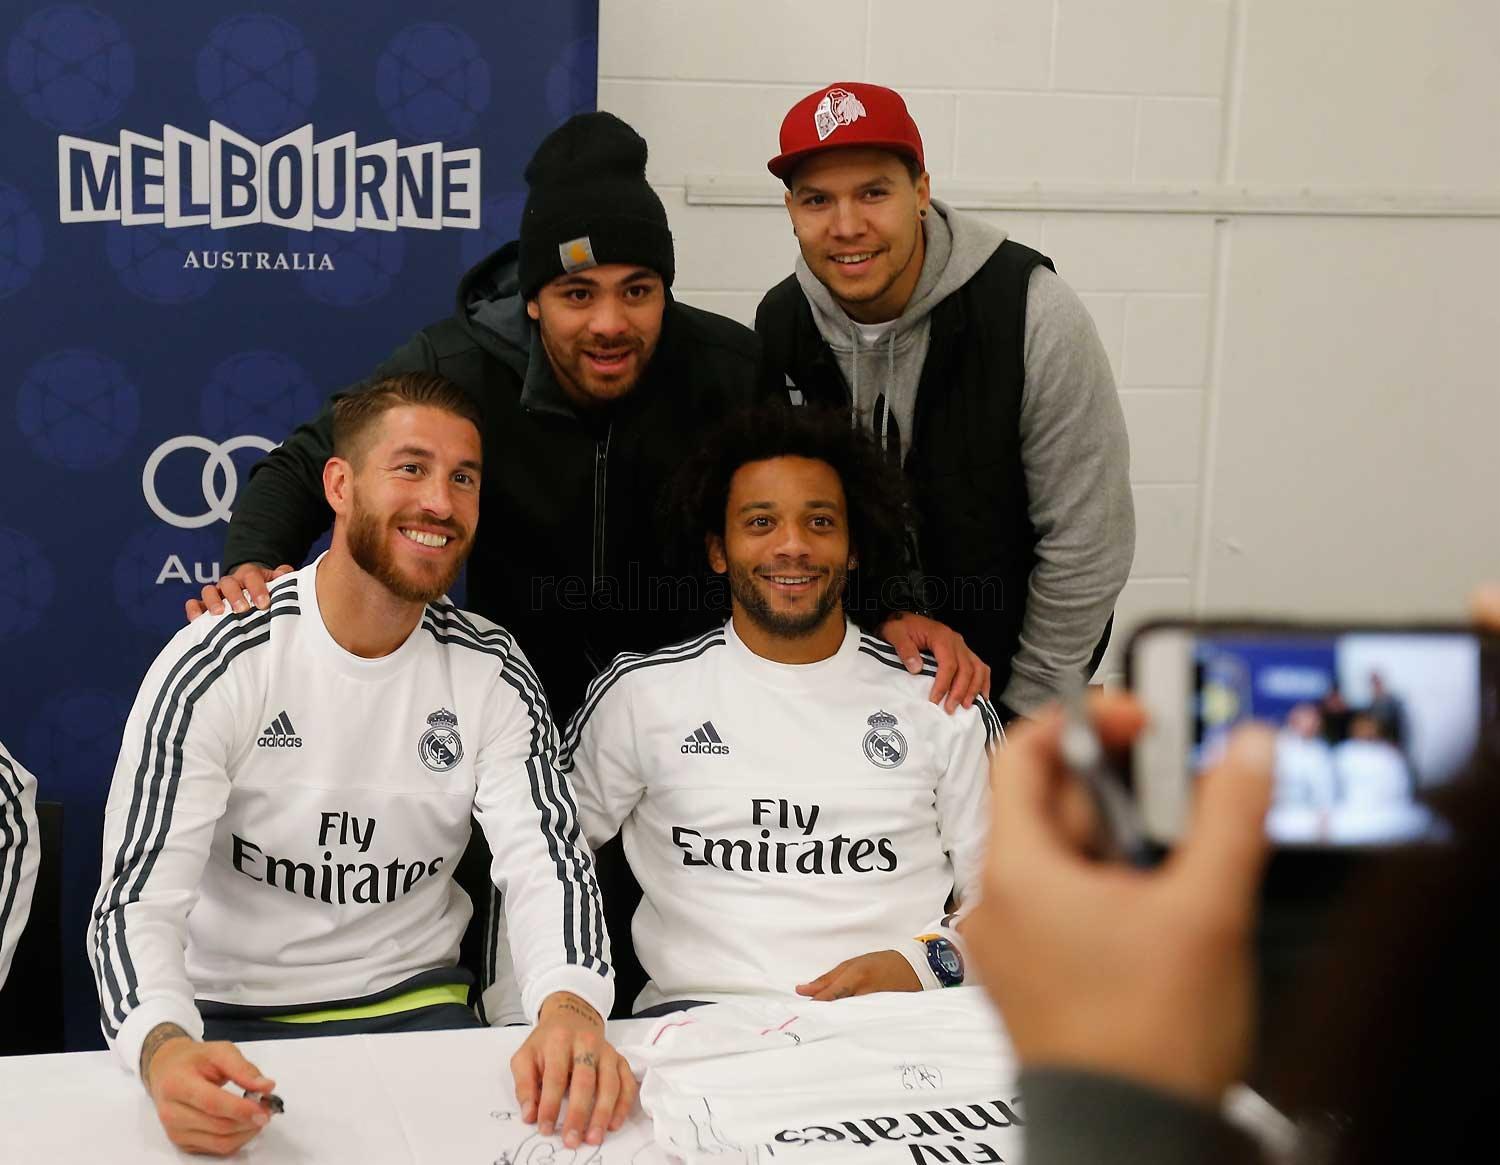 Real Madrid - Meet and greet - 17-07-2015